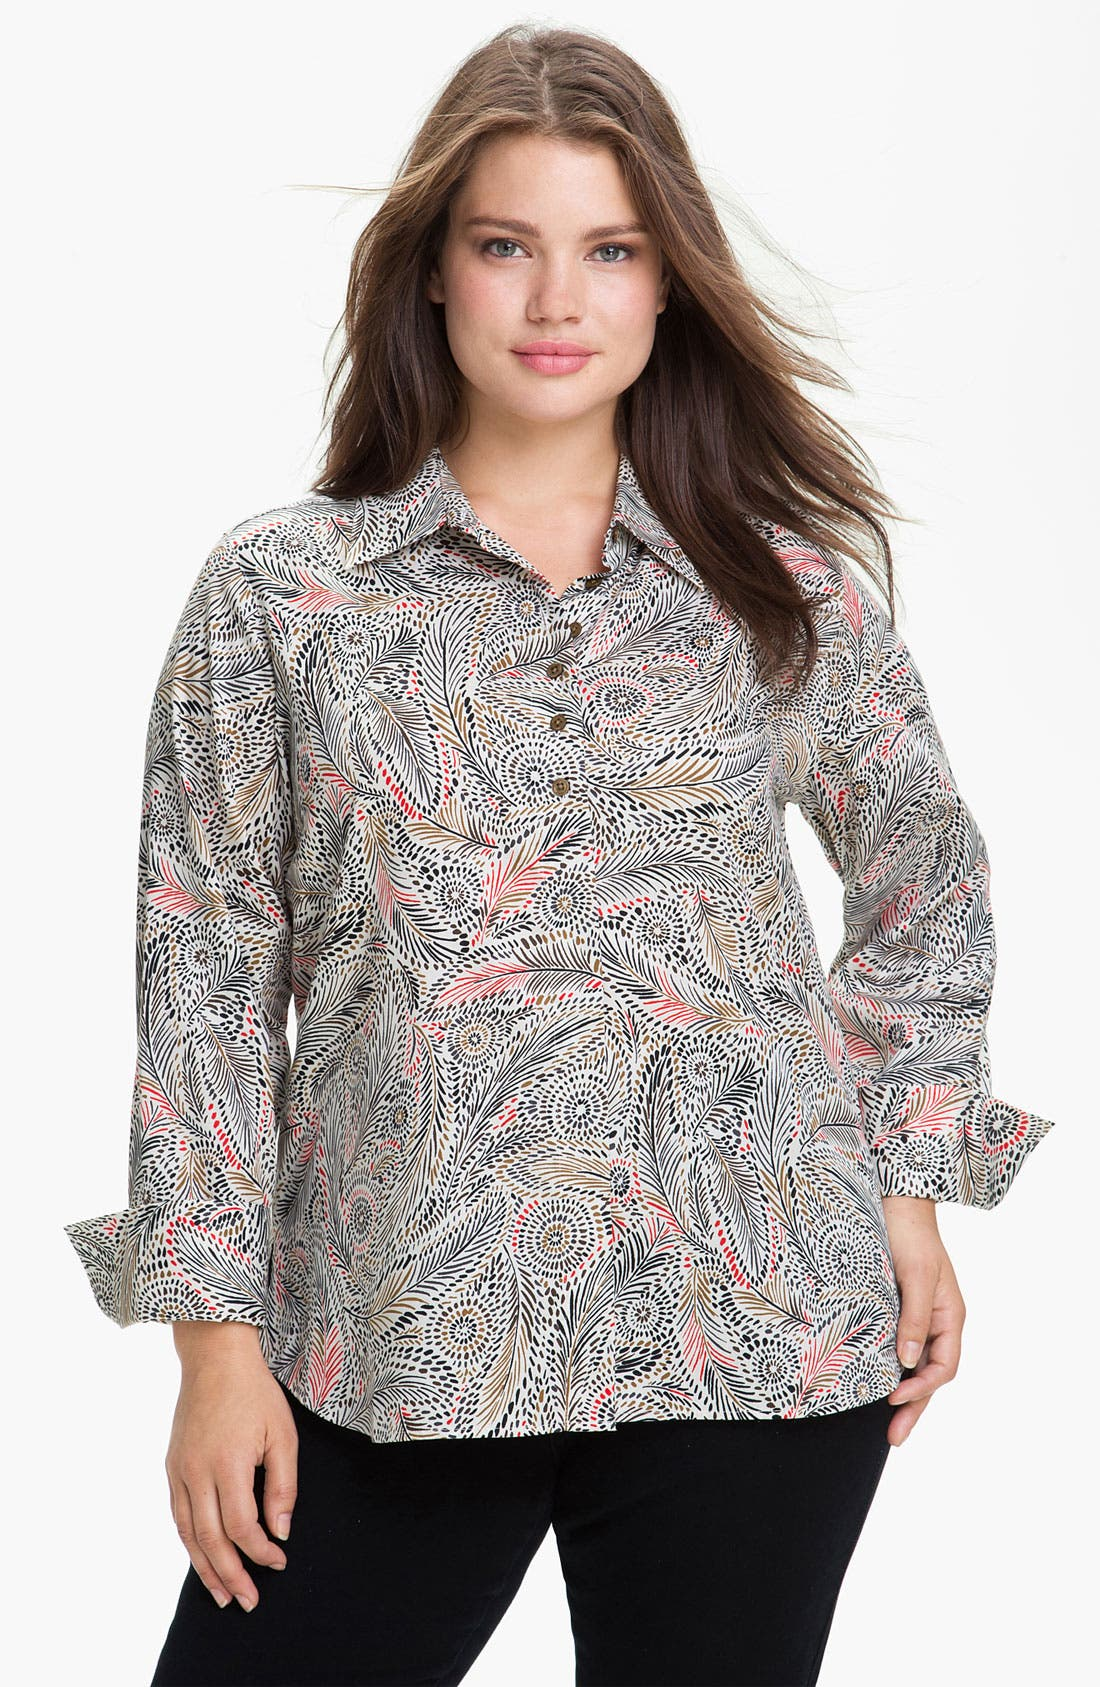 Alternate Image 1 Selected - Foxcroft Feather Print Wrinkle Free Shaped Shirt (Plus)